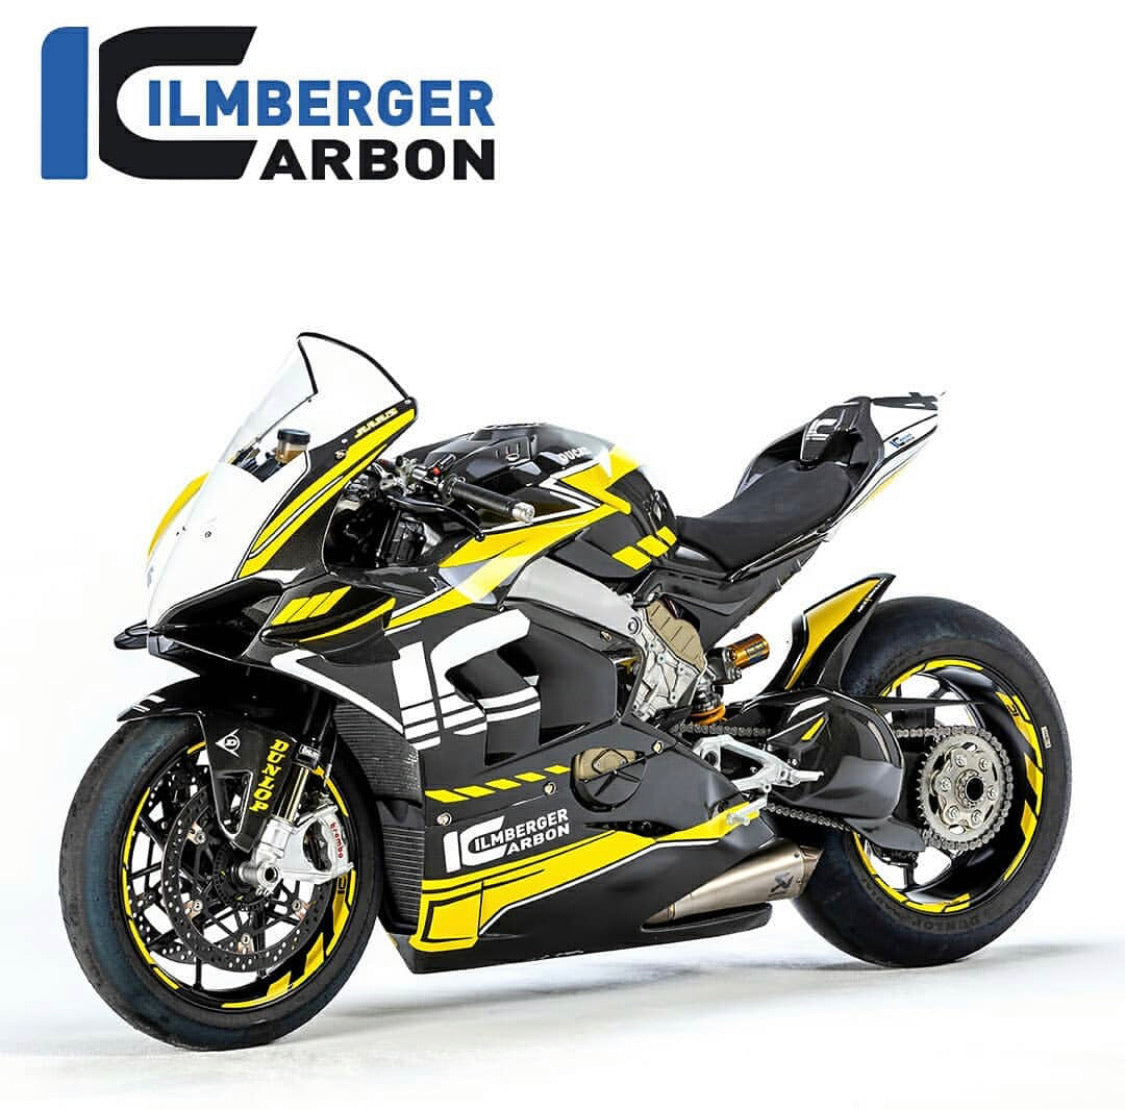 Ducati Panigale V4R Race, Carbon Parts, Ilmberger Carbonparts - Averys Motorcycles